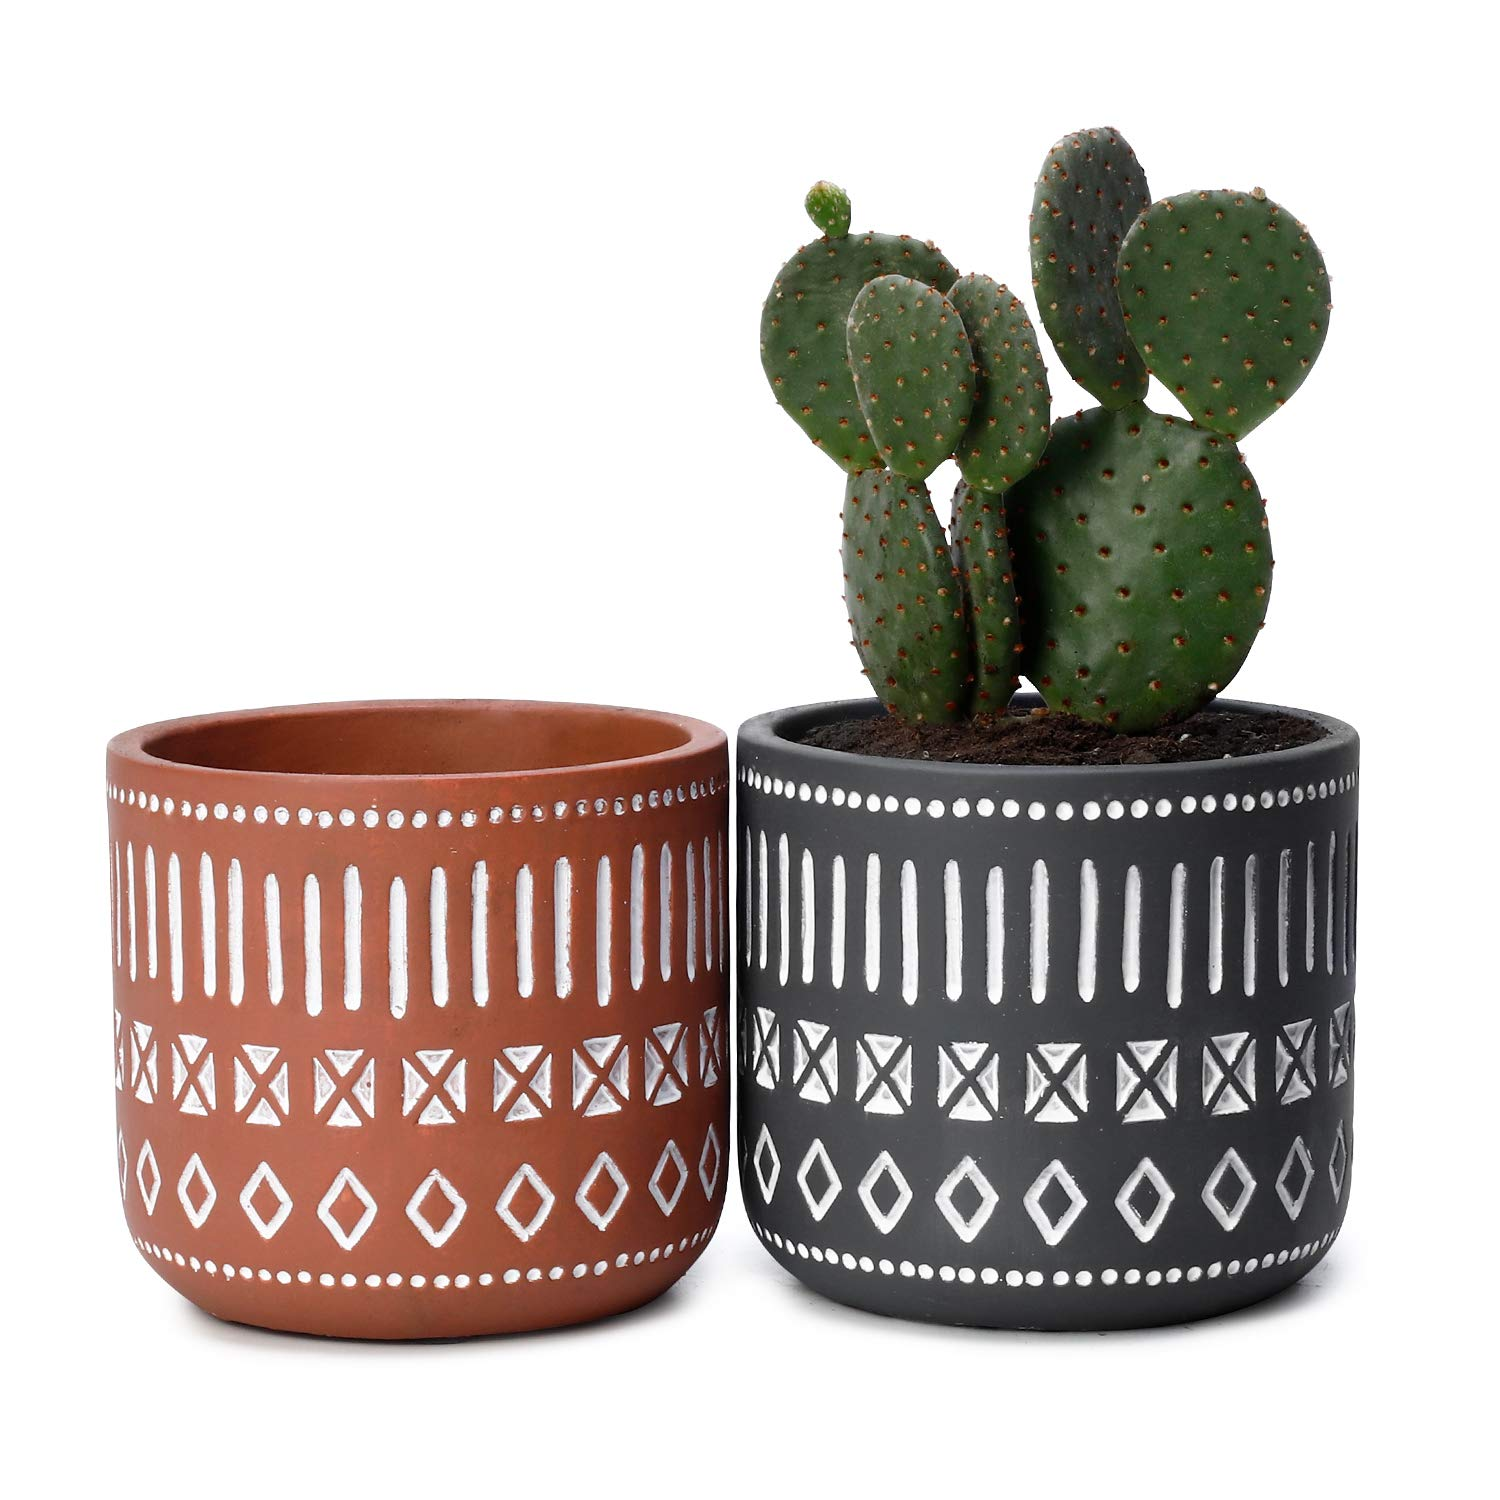 Potey Cement Plant Pots Concrete Flower Planters – 4.3 Medium Pot with Drain Hole – Handcraft Geometry Cylinder Deco Indoor – Set of 2, Brown, Grey